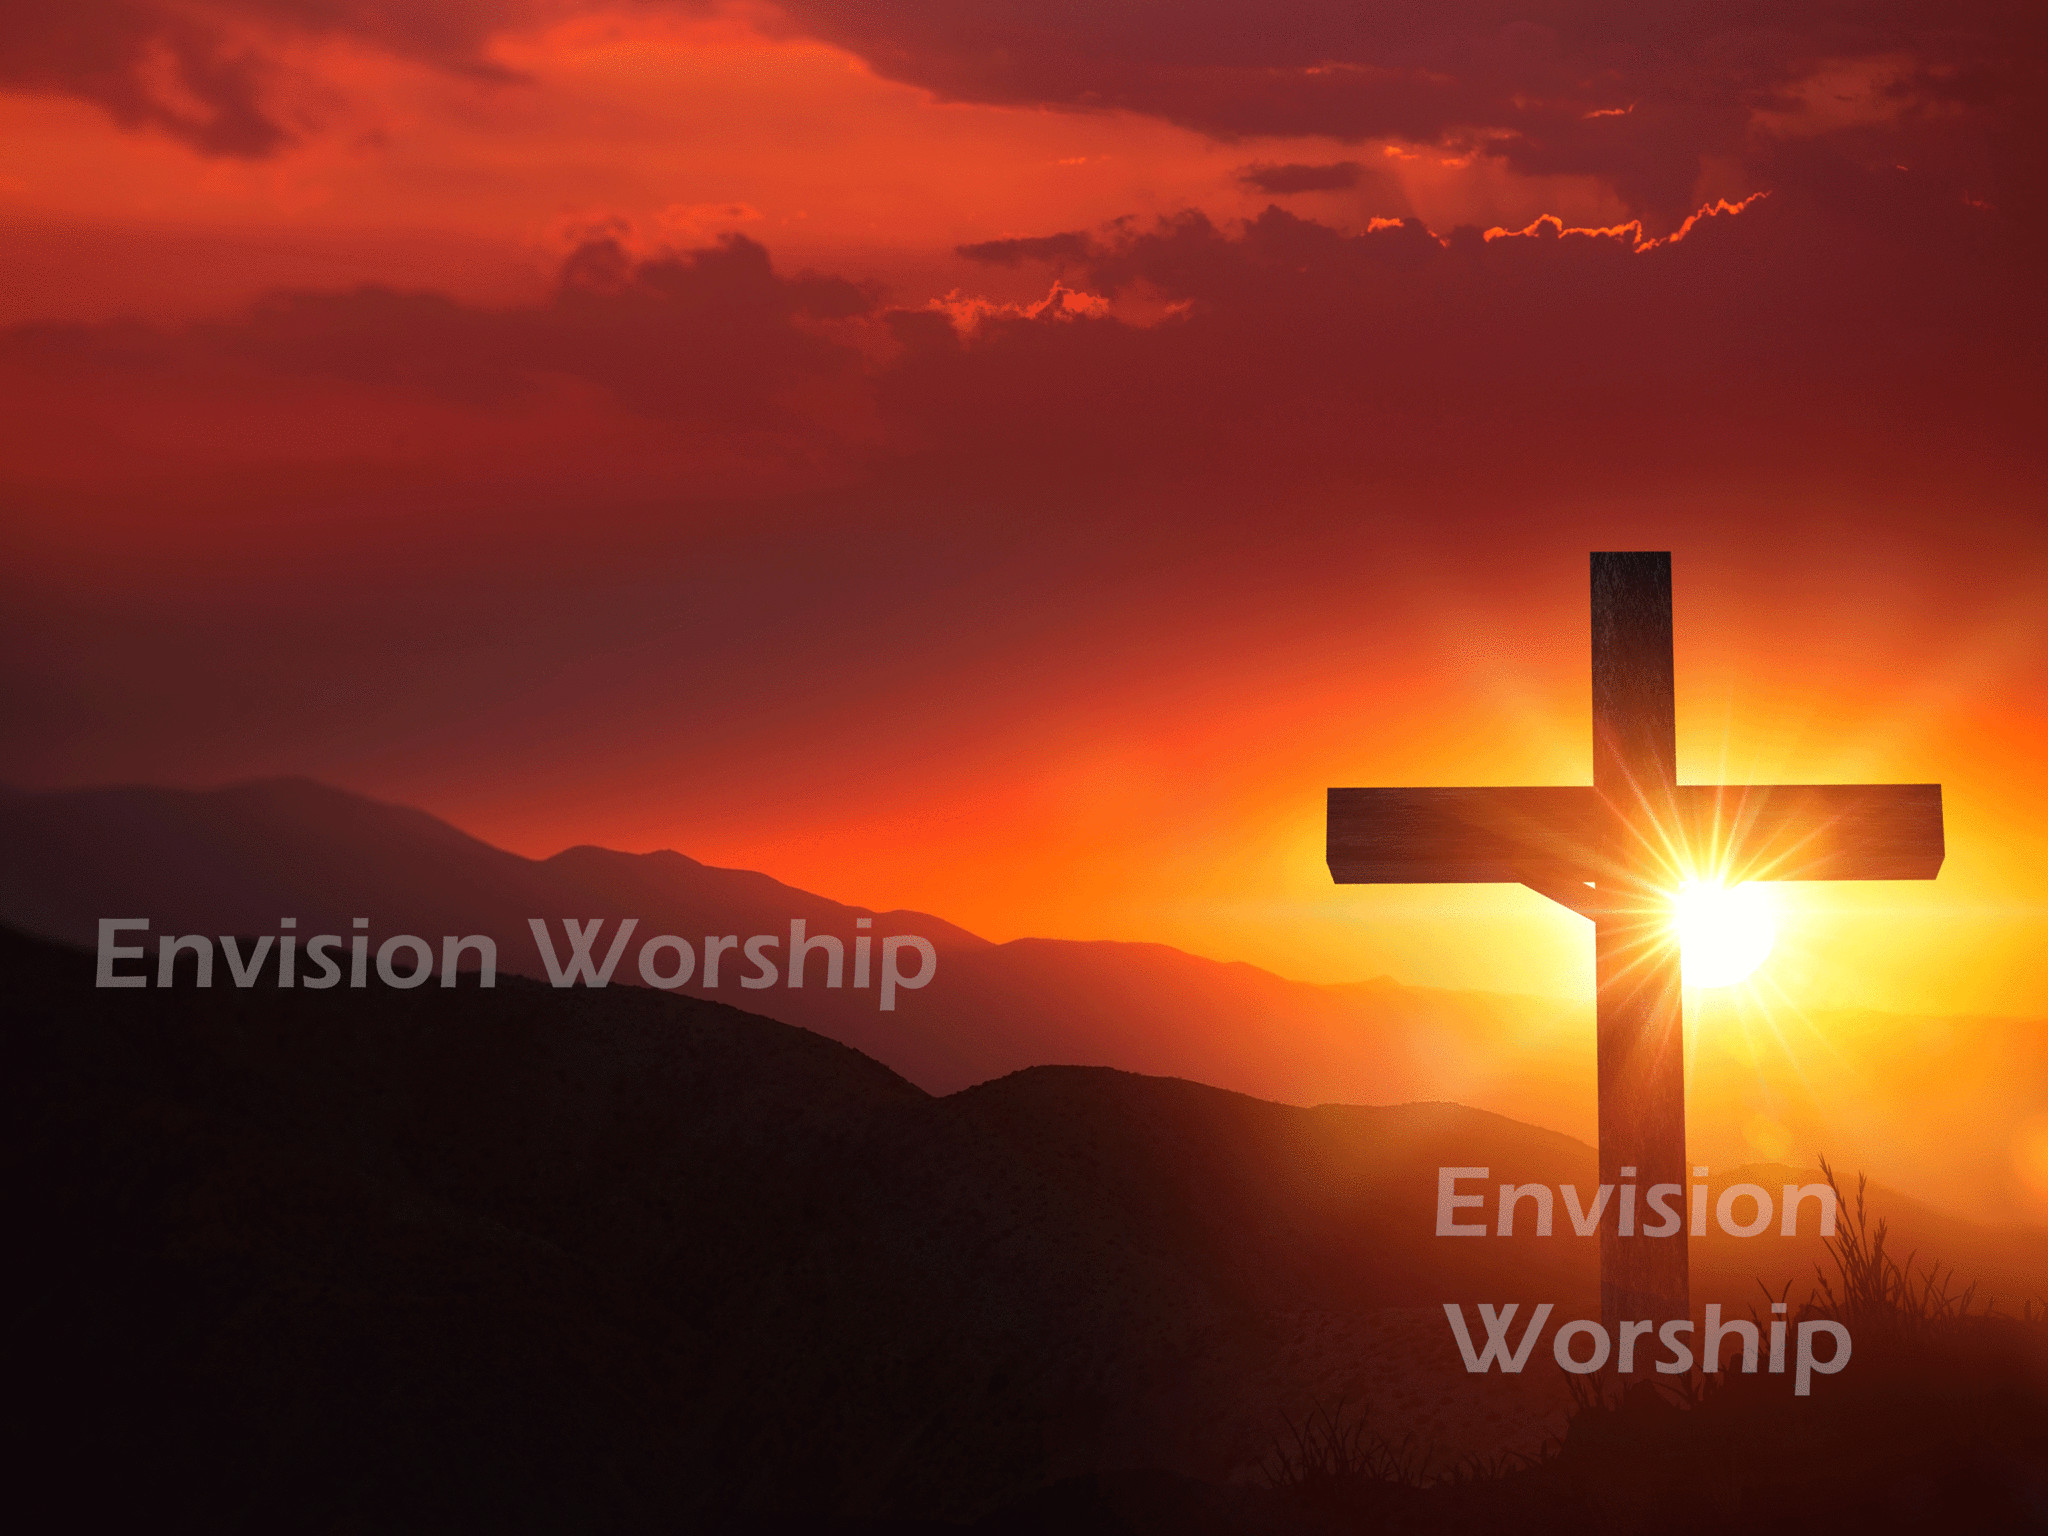 Christian Background Images 43